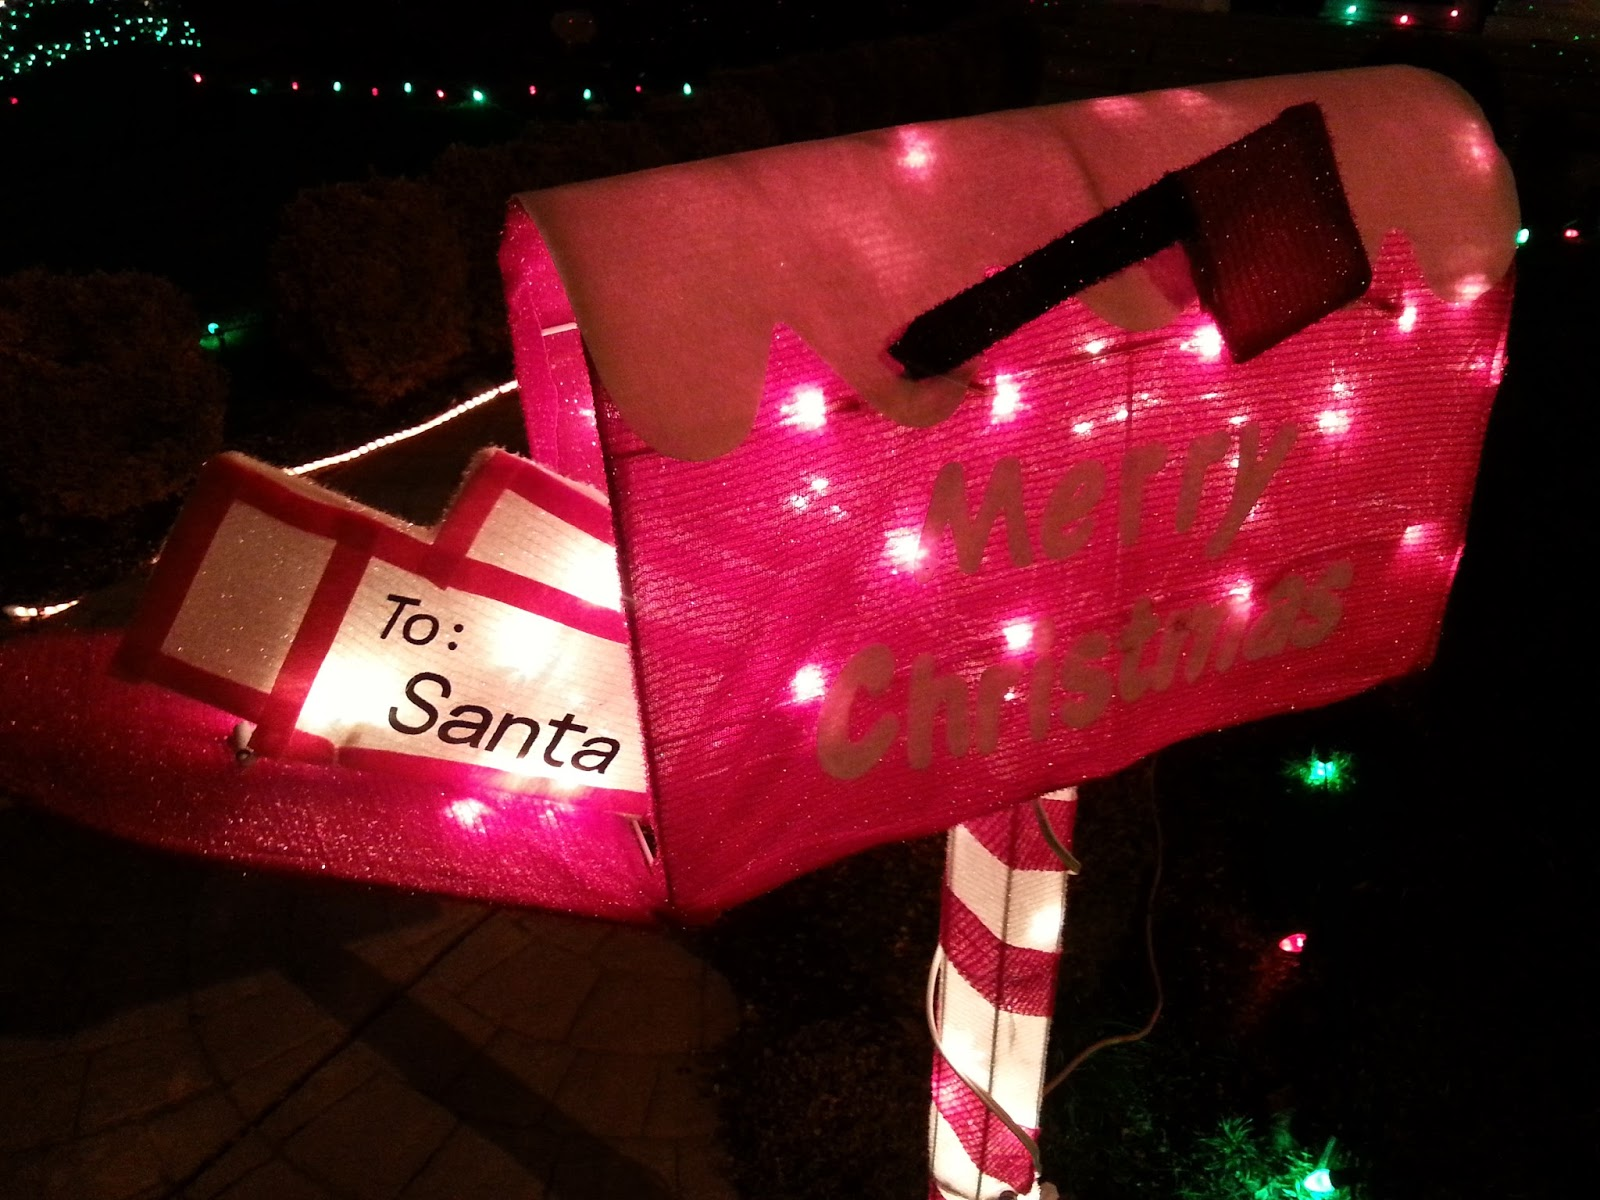 CHRISTMAS LIGHTS TRAIL IN MEDFORD - What to do in Southern ORegon - Greystone Ct - Cherry Lane